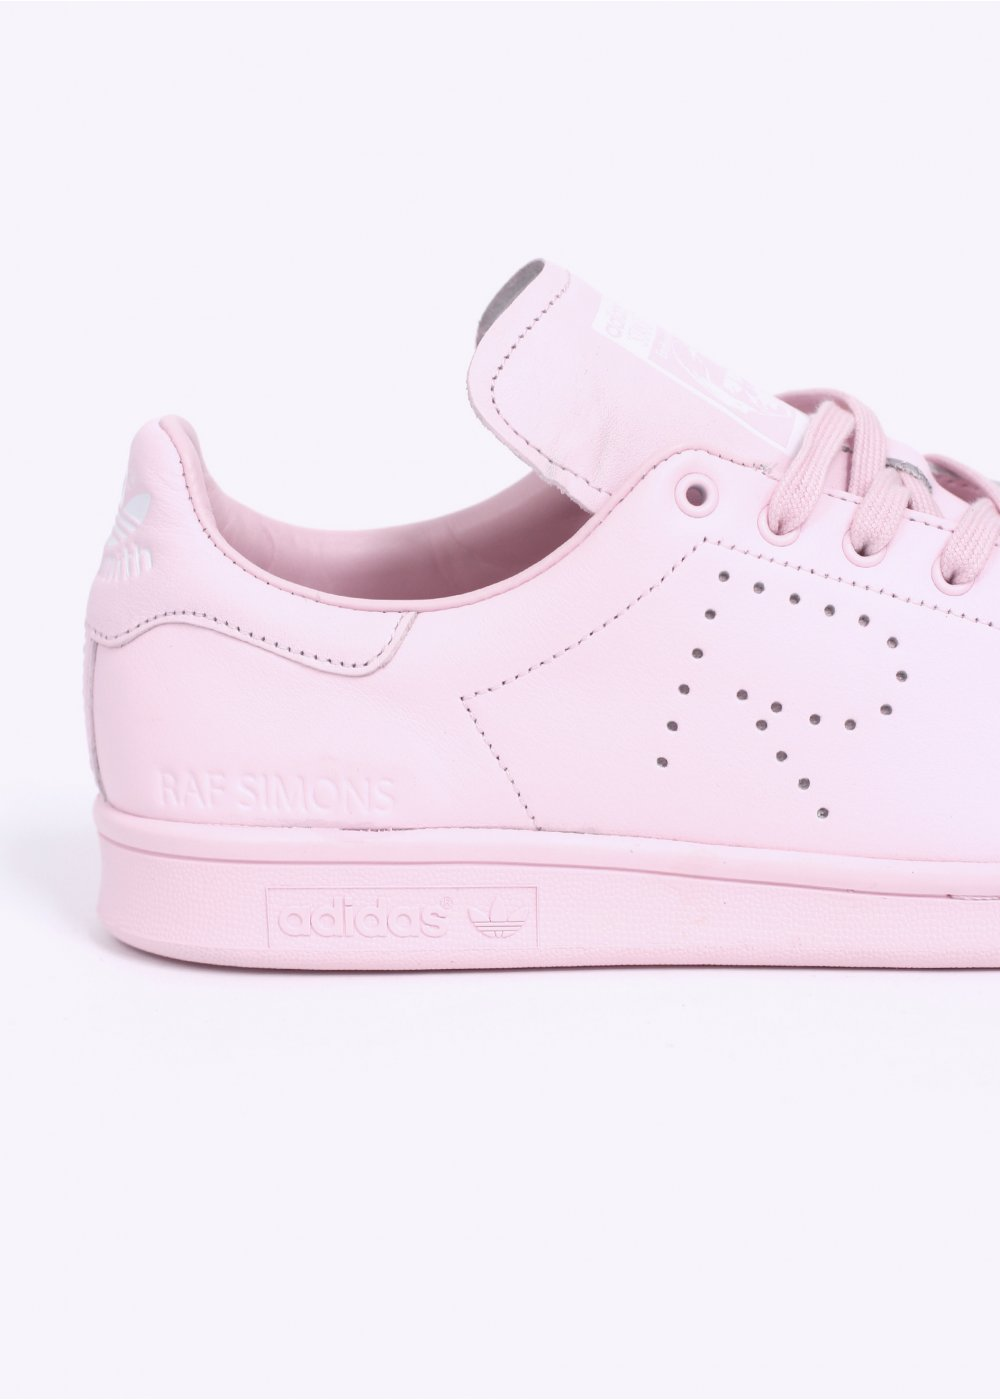 on sale 87e0a eae04 adidas Originals by Raf Simons STAN SMITH TRAINERS - PINK / WHITE